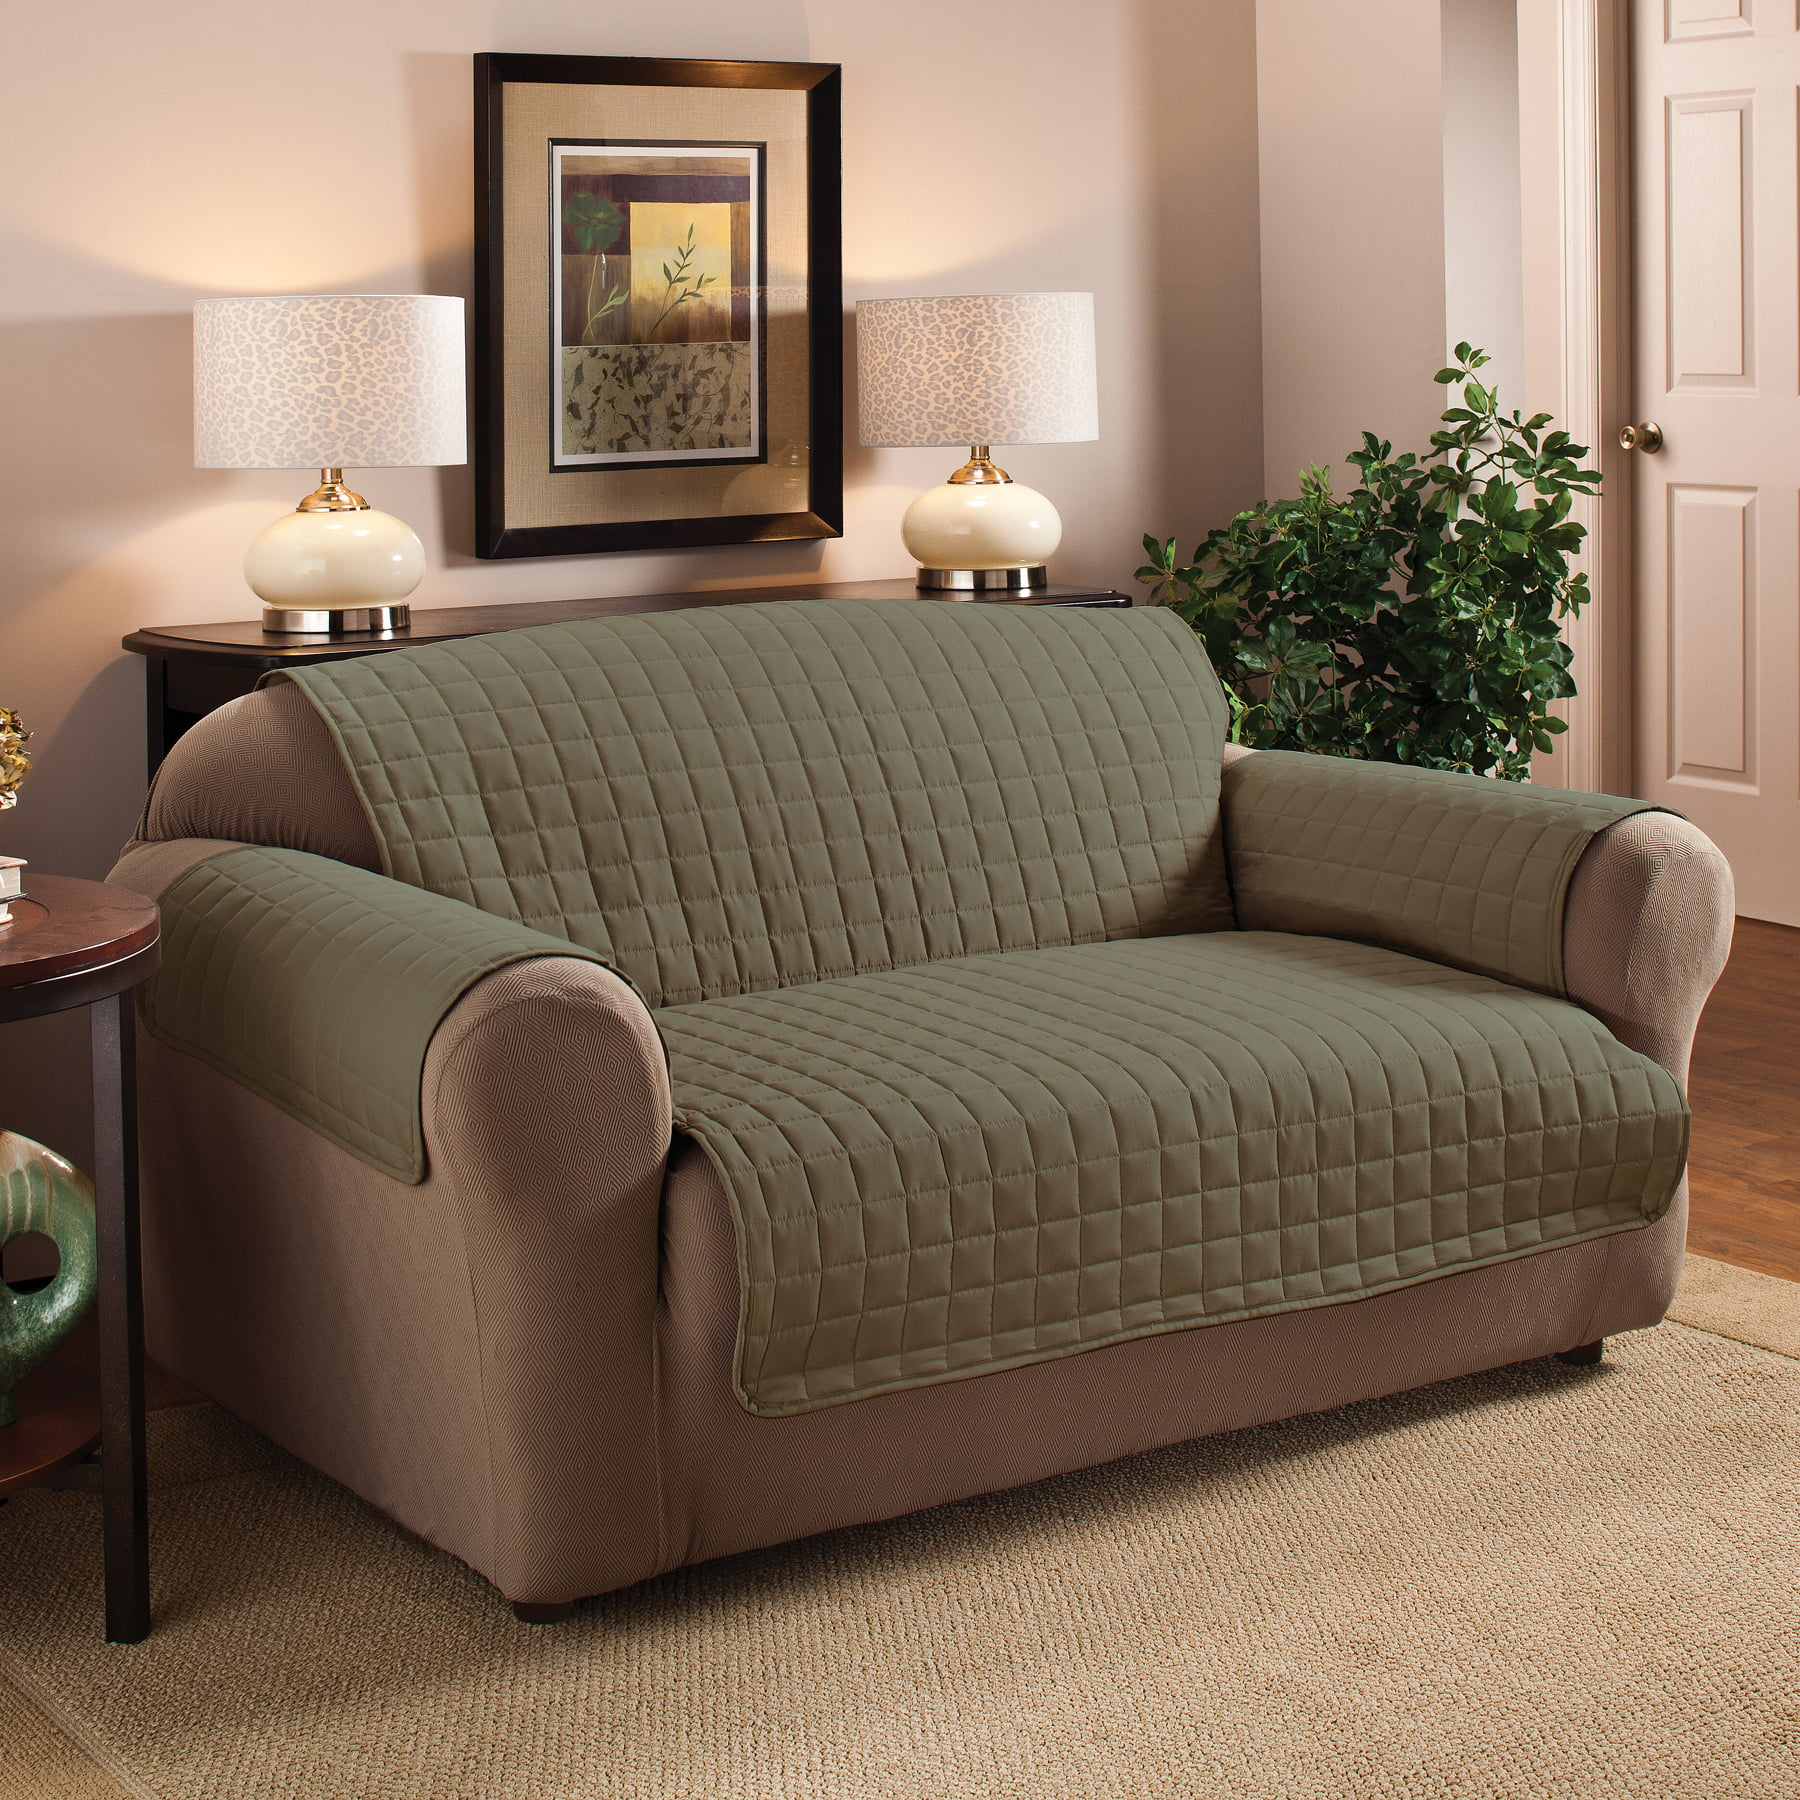 Innovative Textile Solutions Microfiber Furniture XL Sofa Furniture Protector Slipcover by Jeffrey Home